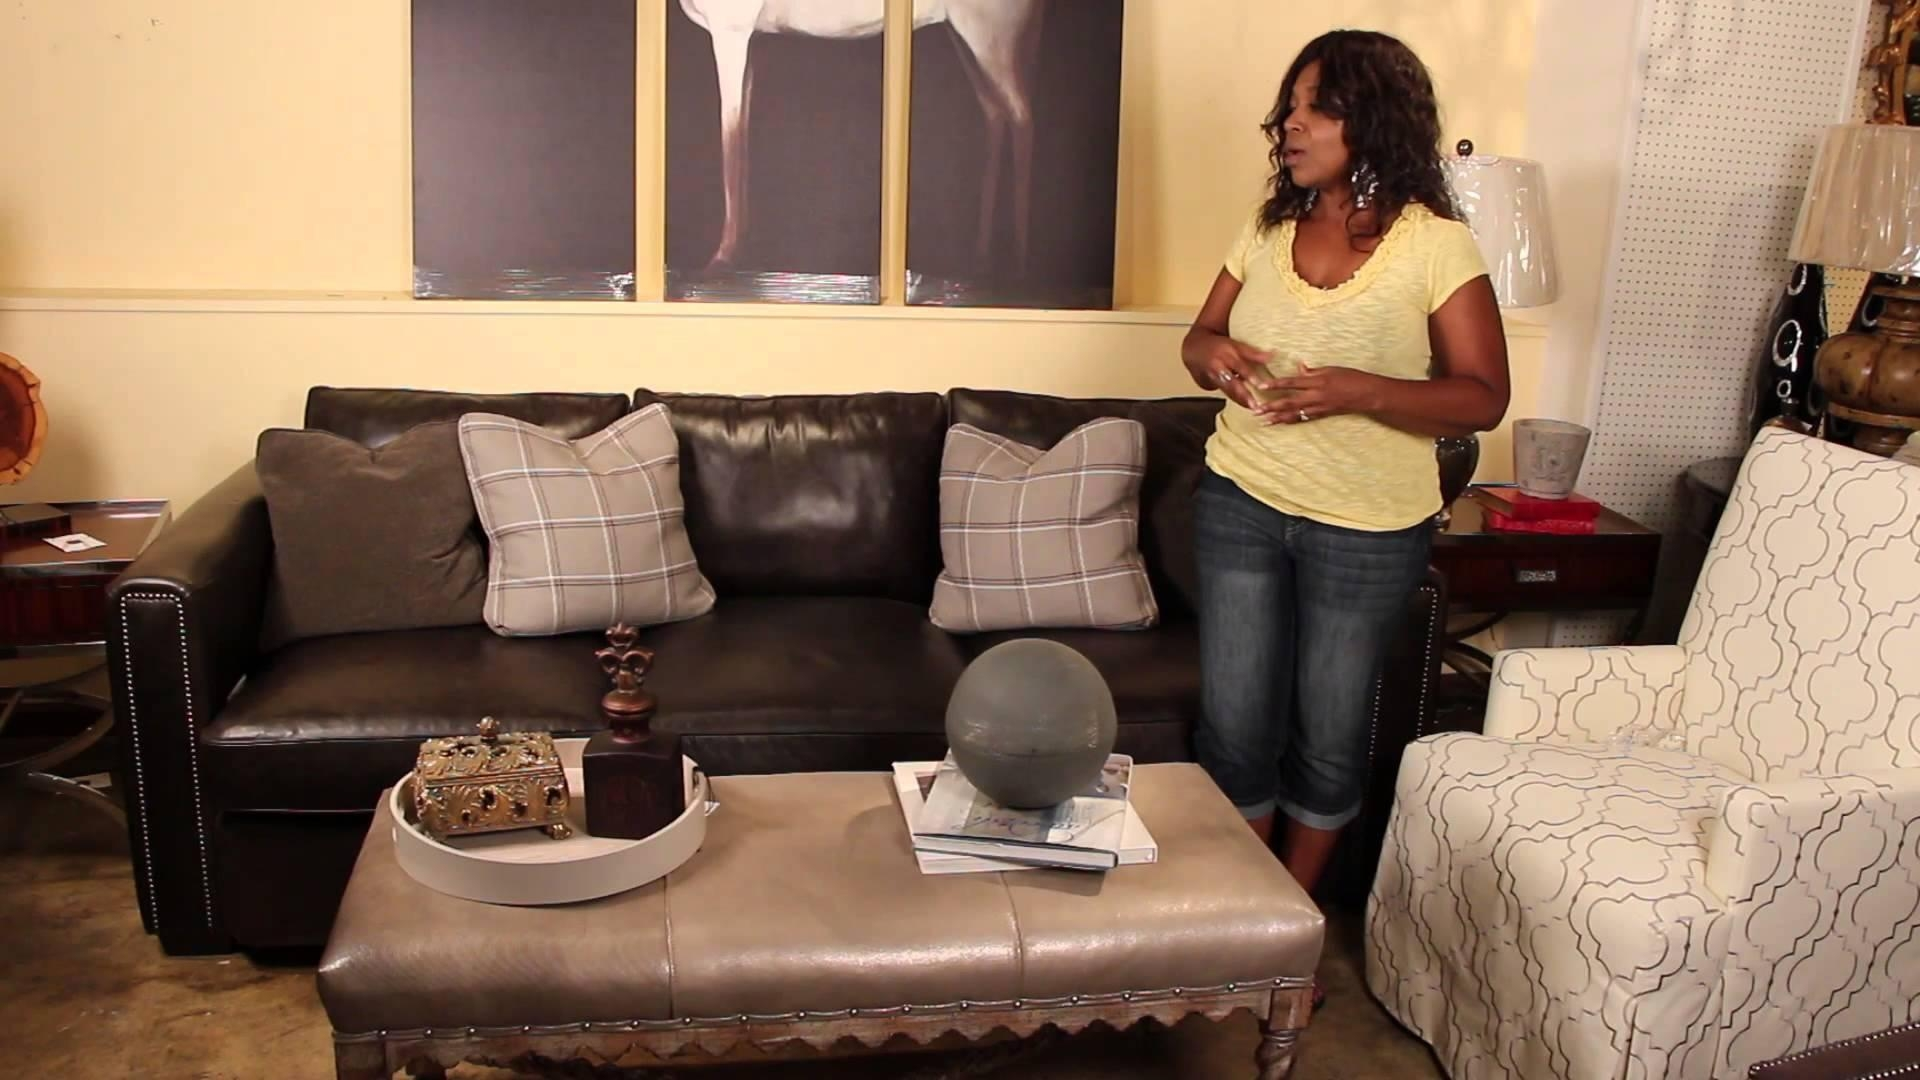 How To Decorate With Leather Sofas & Fabric Chairs : Perfect Intended For Leather And Cloth Sofa (Image 6 of 20)